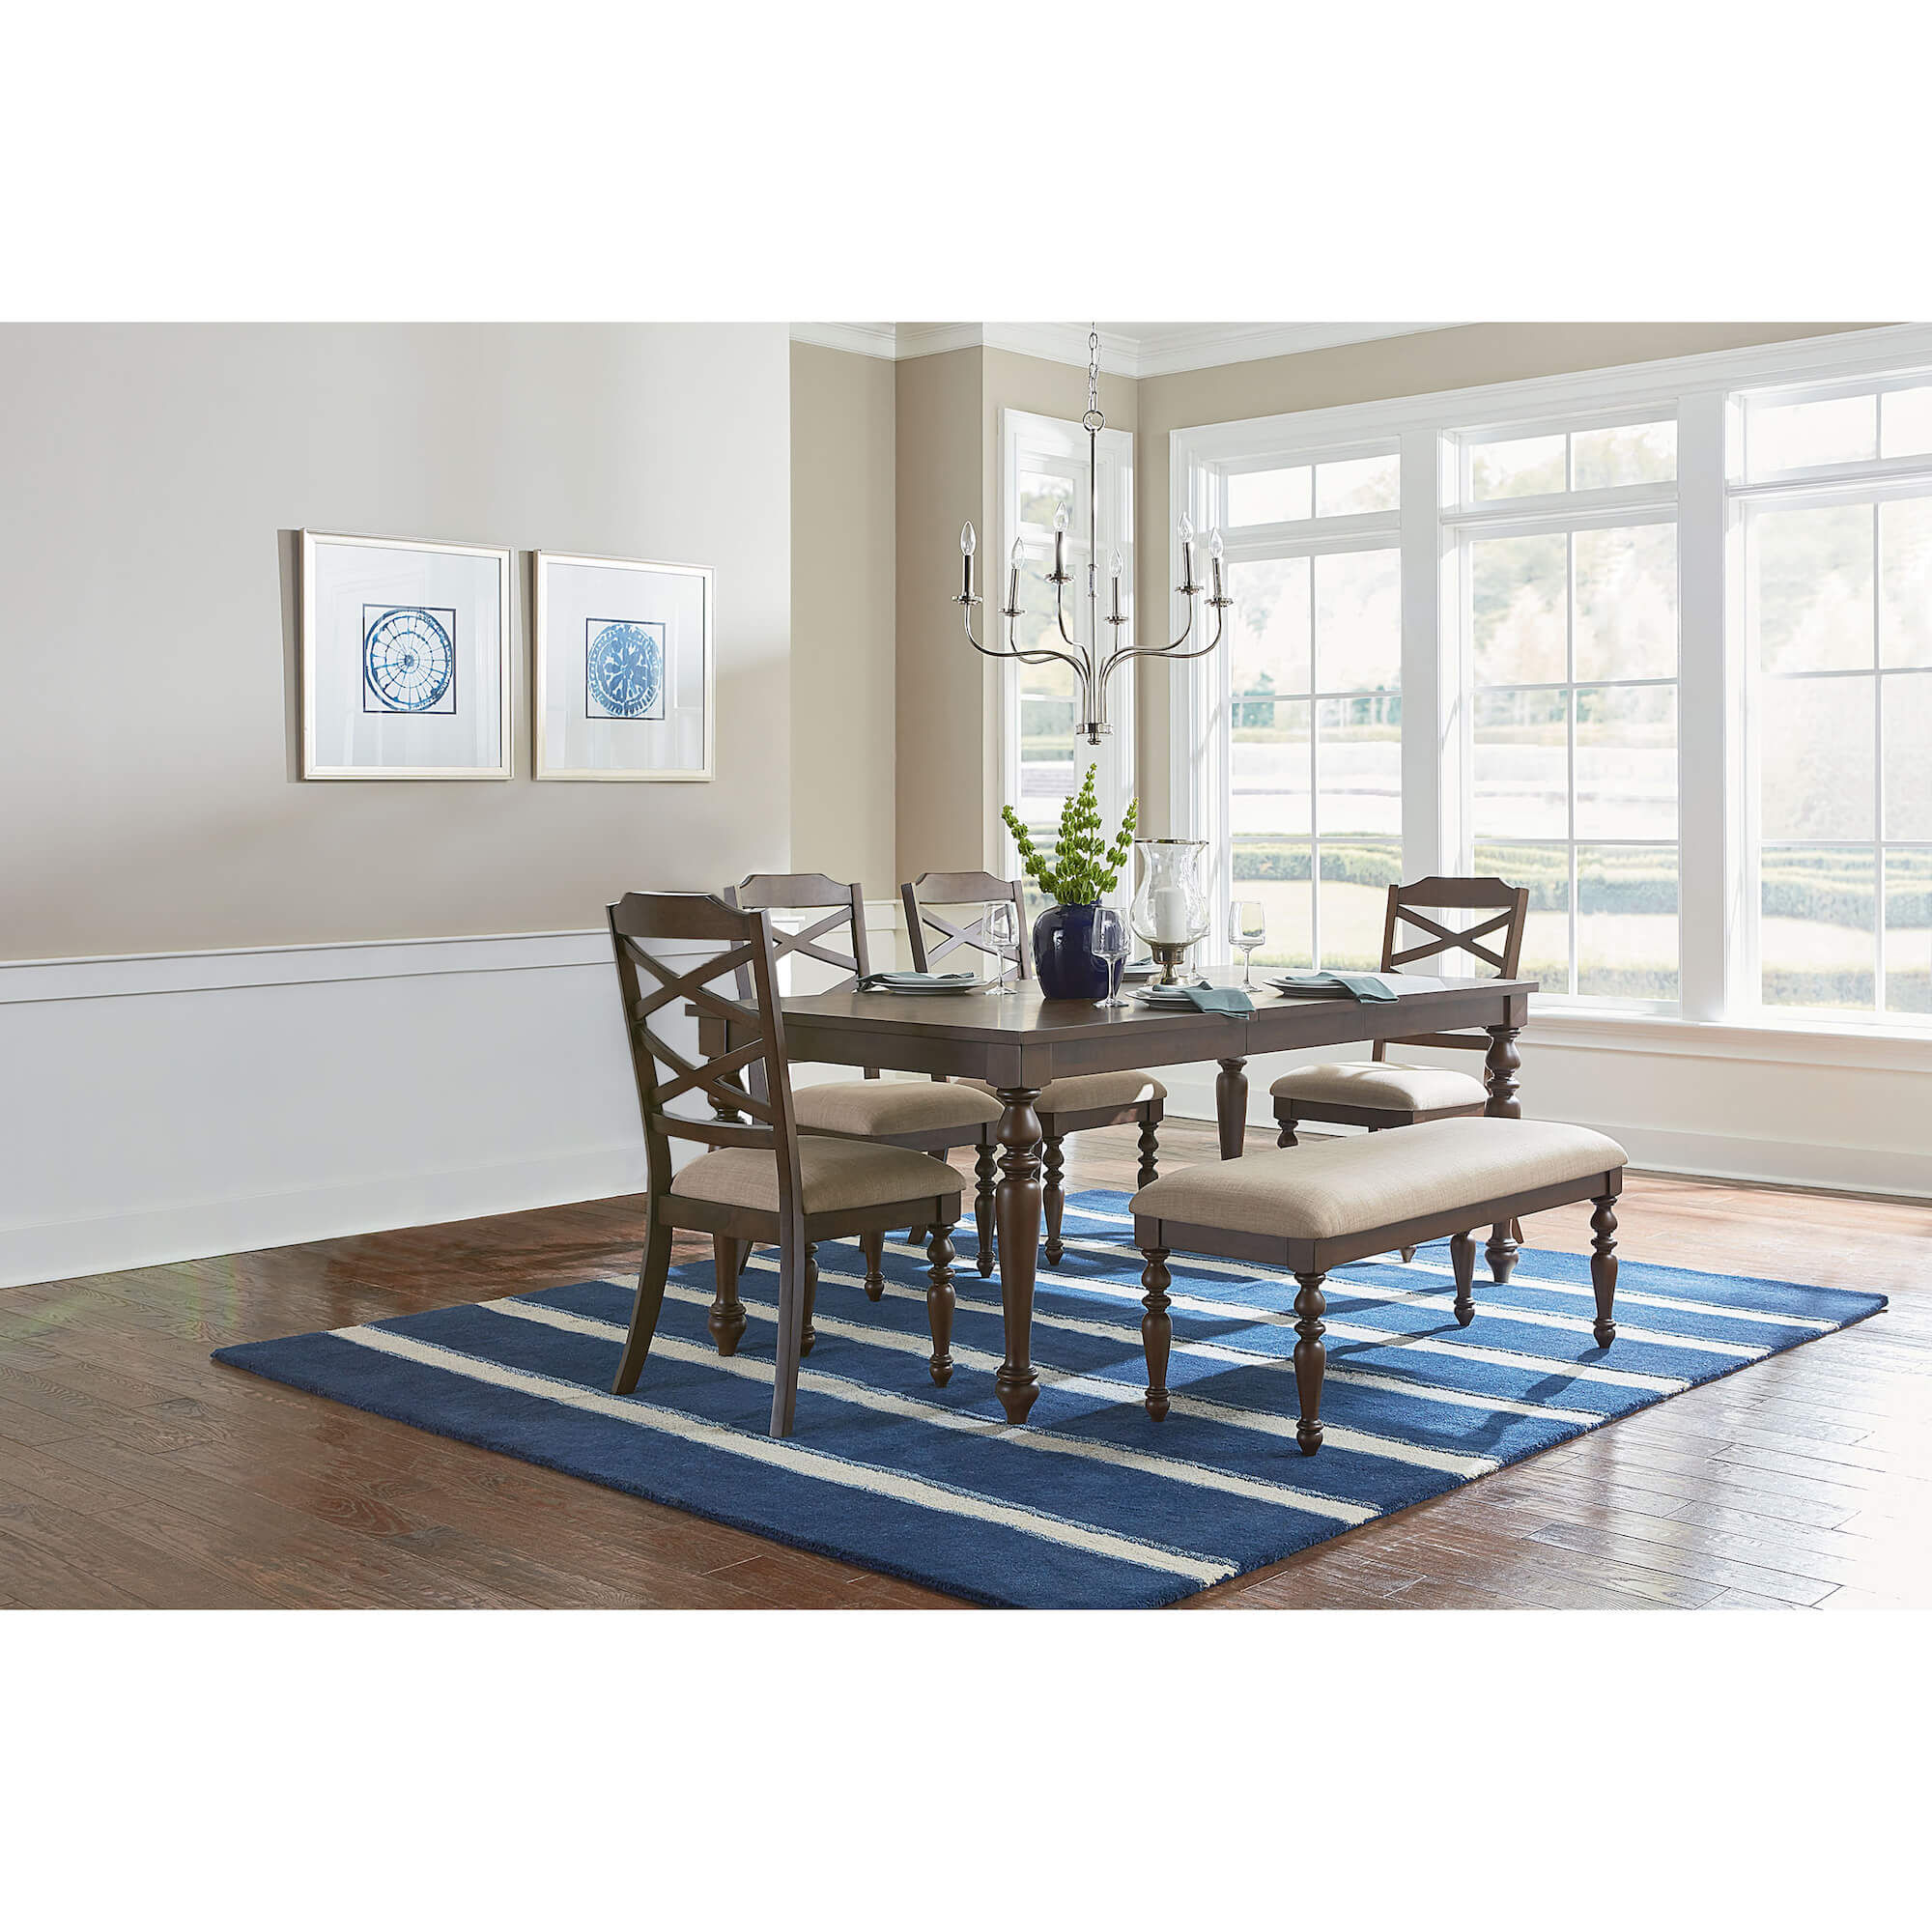 6 Piece Larson Dining Room Collection